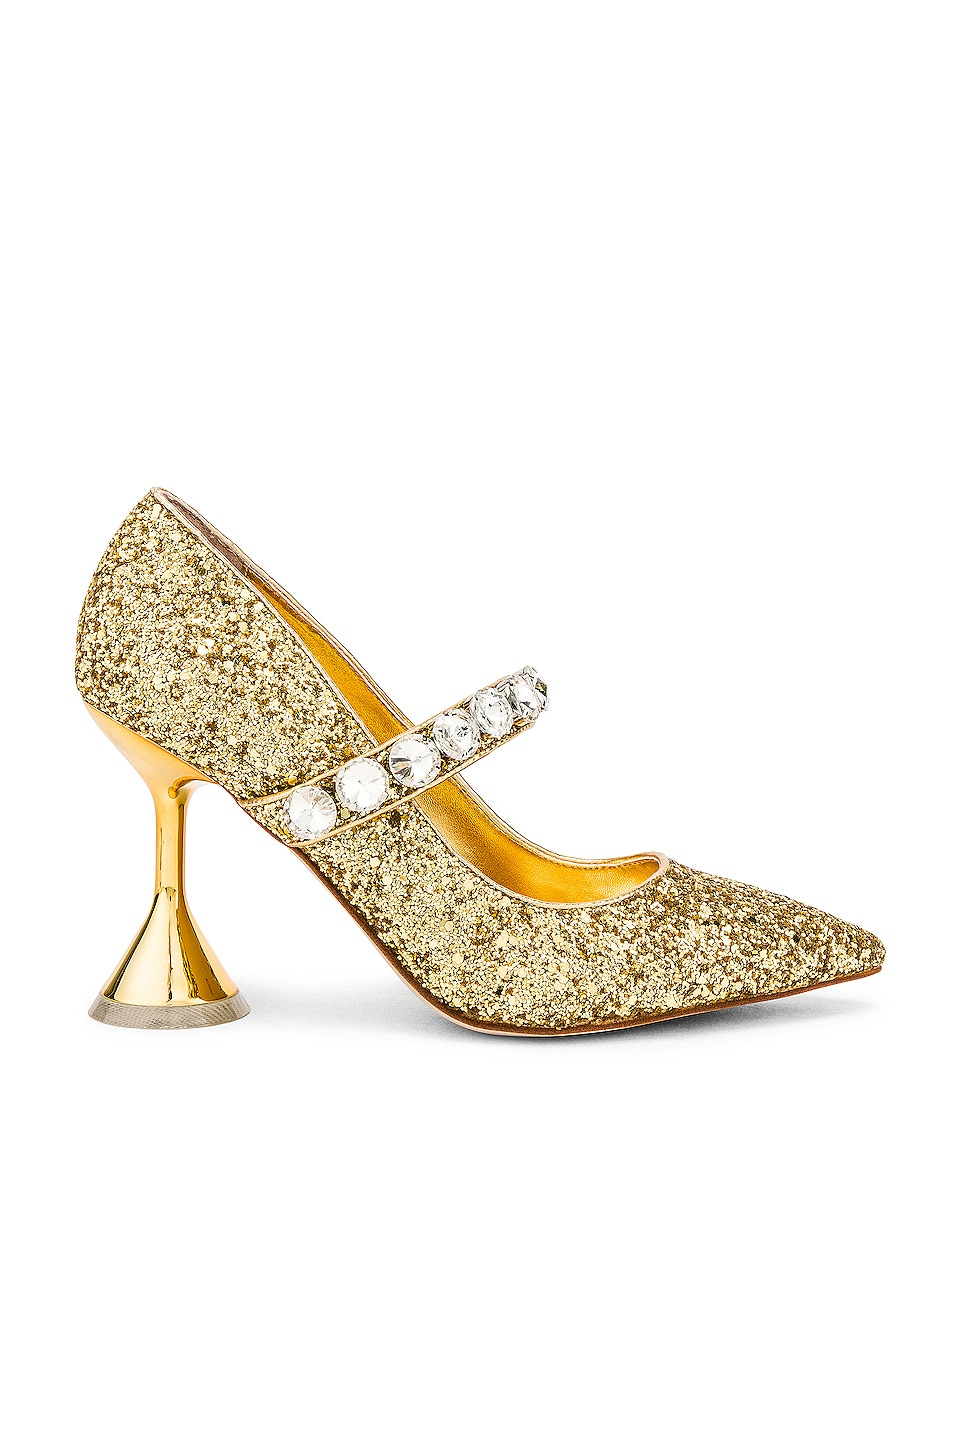 Jeffrey Campbell Perlah Heel in Gold Glitter